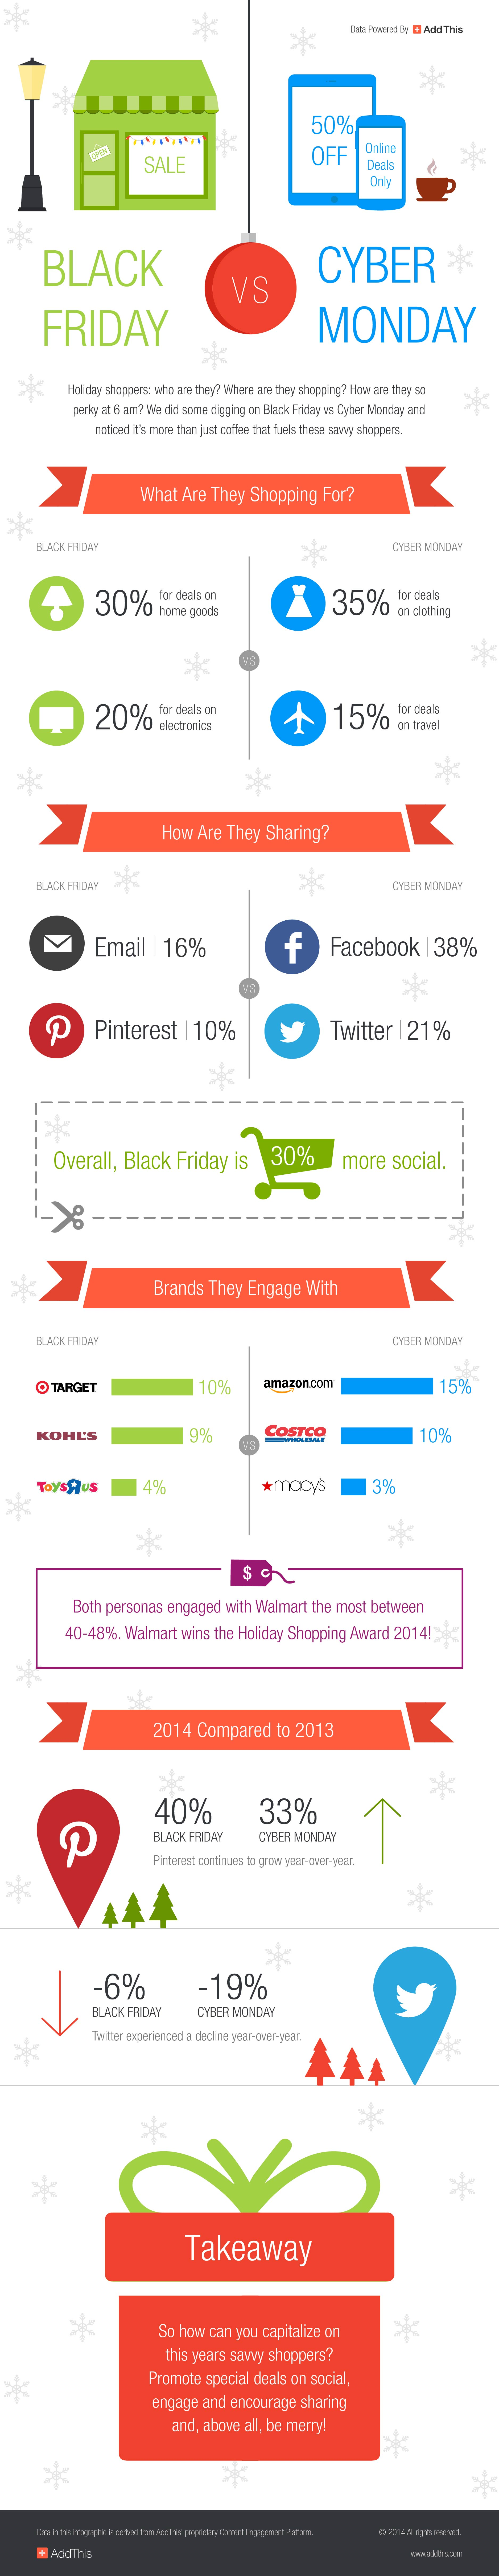 Infographic Black Friday Vs Cyber Monday Which One S Bigger Addthis Cyber Monday Infographic Black Friday Cyber Monday